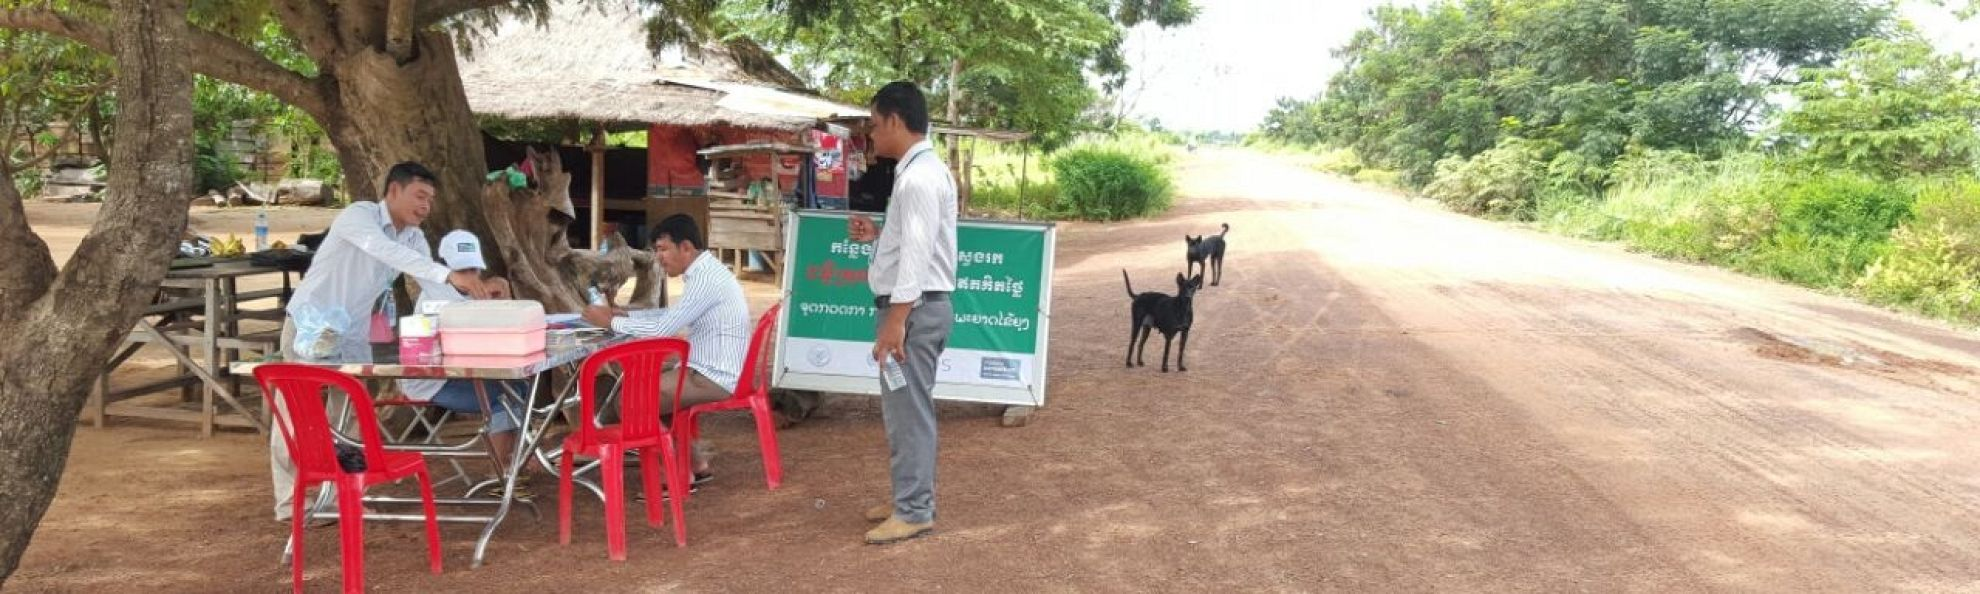 Latest News Targeting malaria hotspots in cambodia by strengthening infrastructure